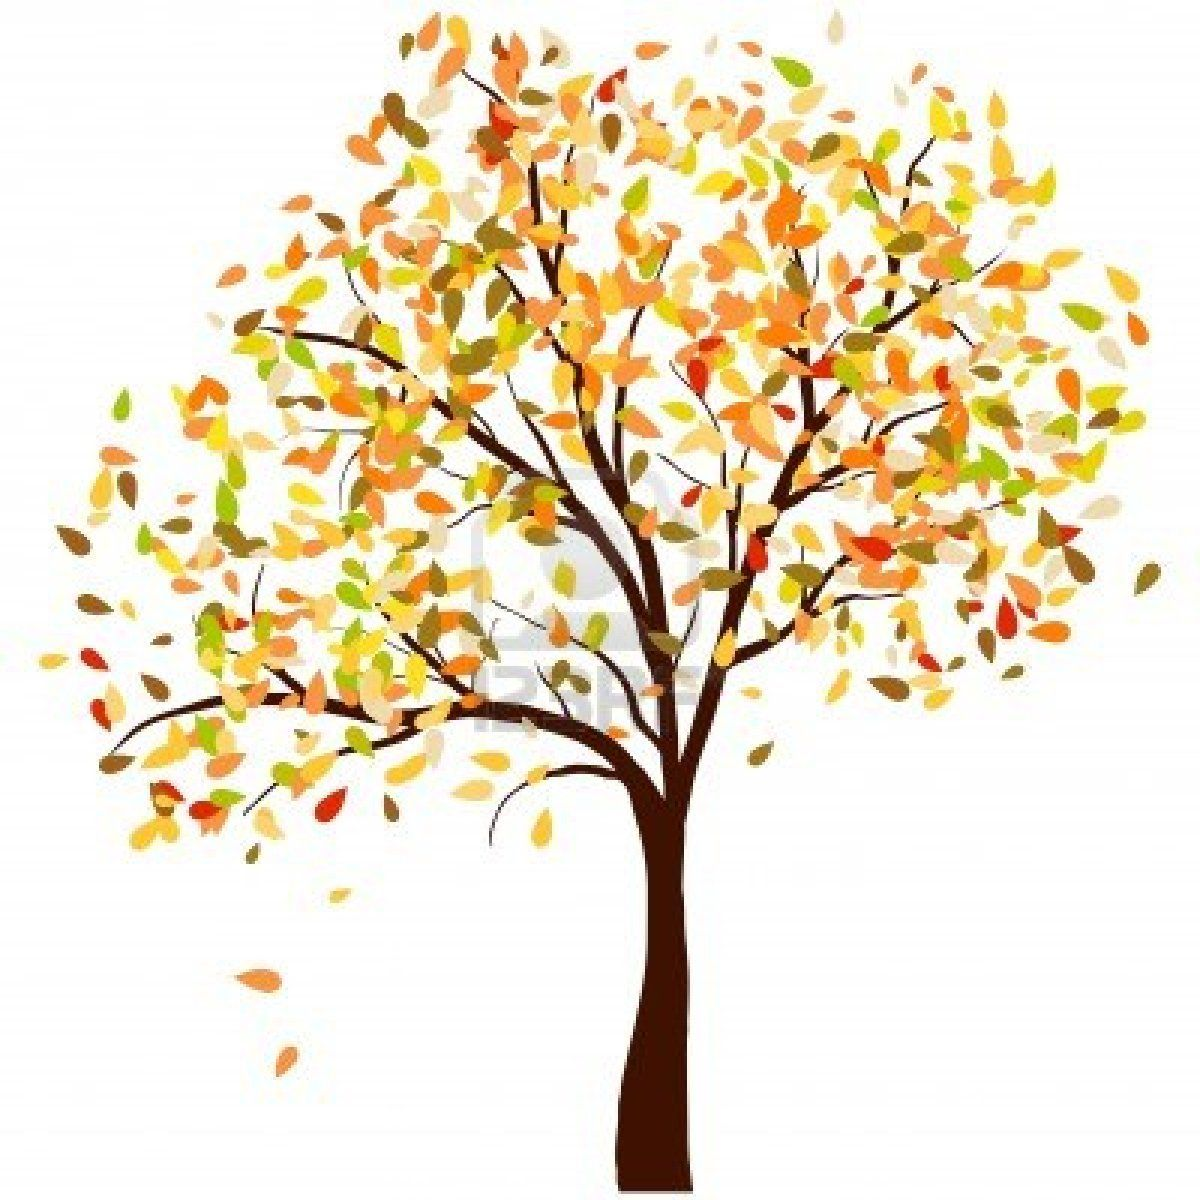 Autumn Birch Tree With Falling Leaves Background Illustration Birch Tree Tattoos Fall Leaves Background Autumn Trees